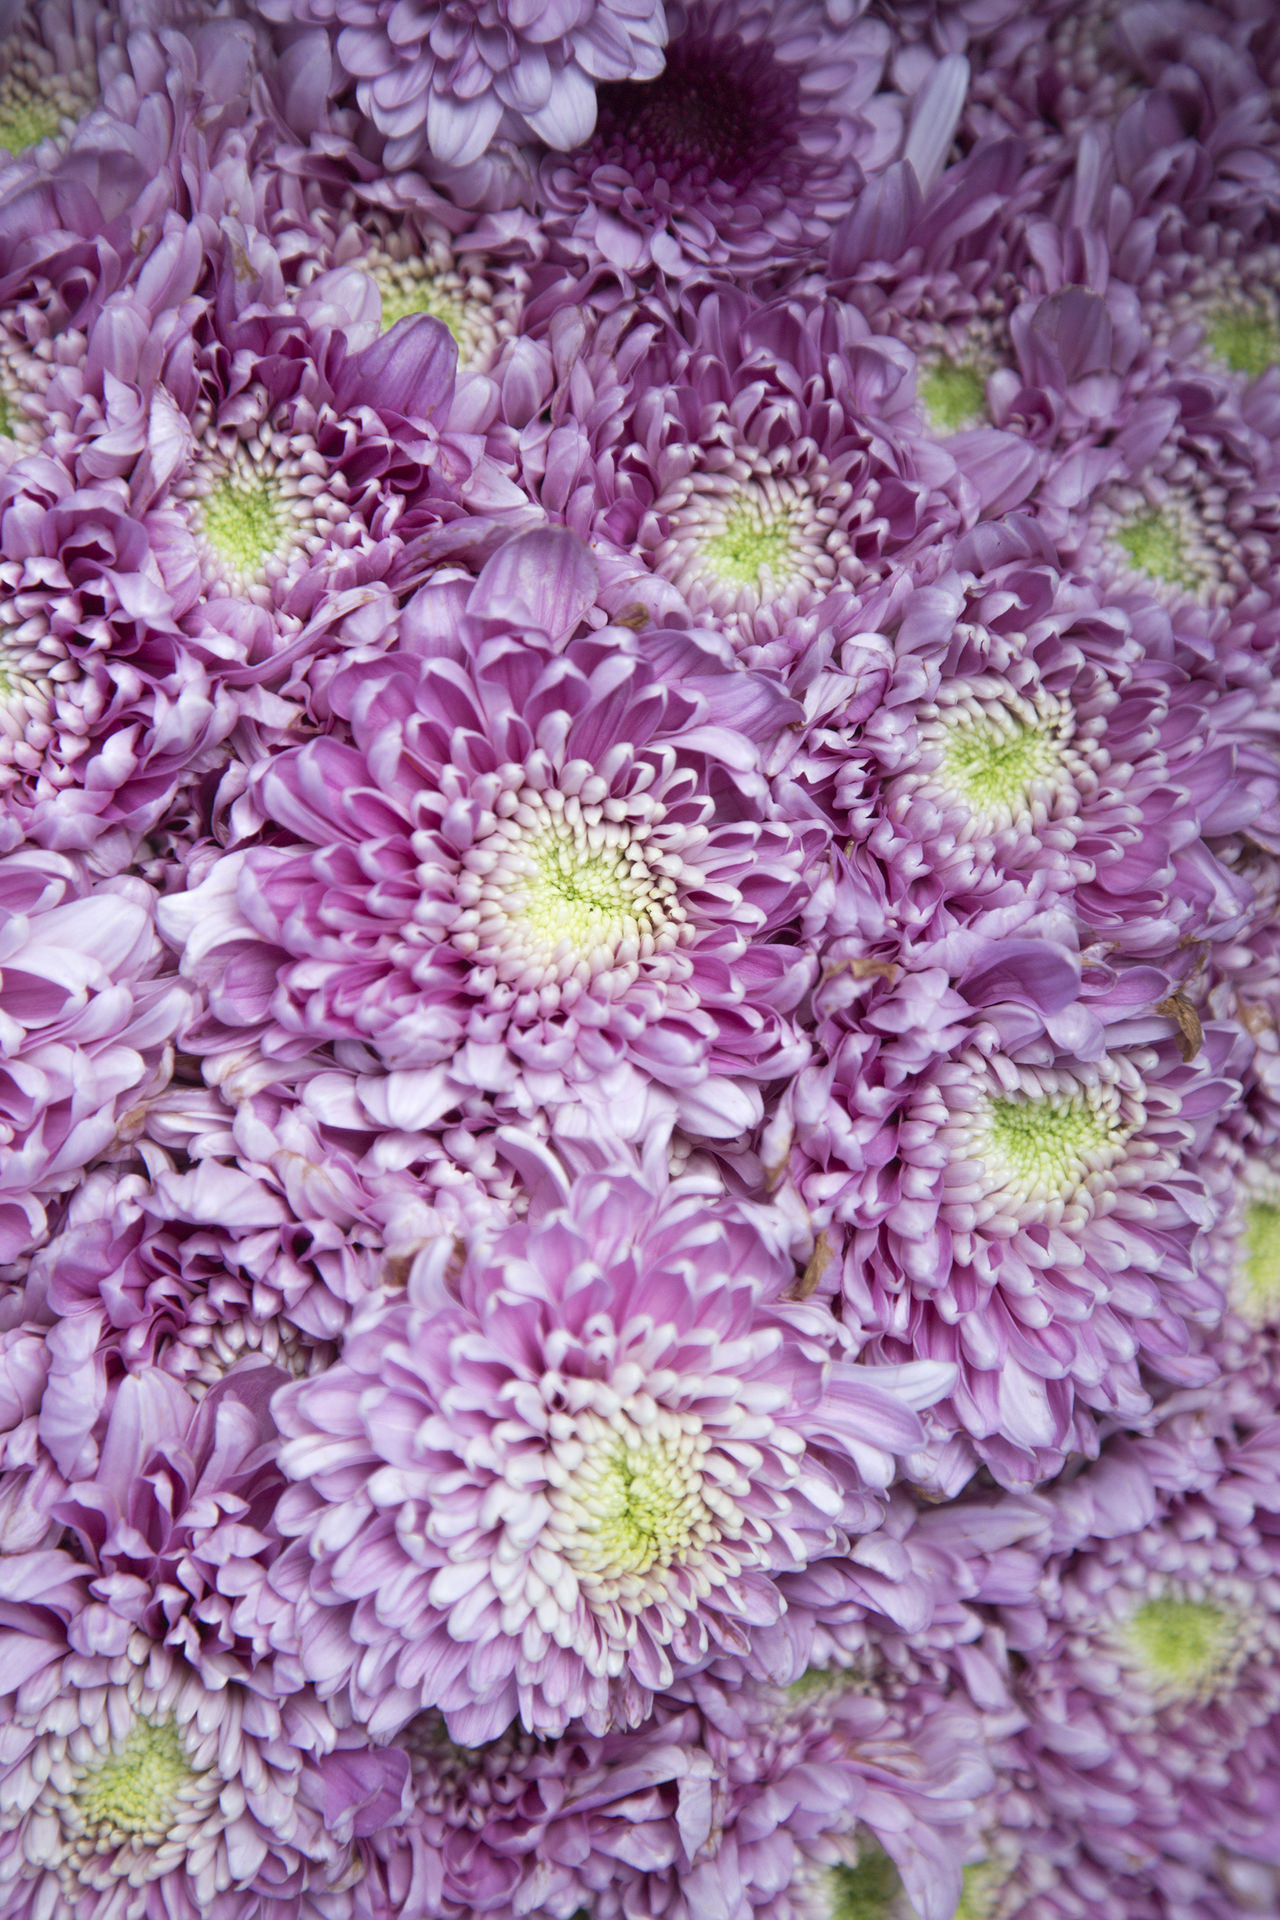 Backgrounds Beauty In Nature Close-up Dahlia Day Flower Flower Head Fragility Freshness Full Frame Growth Nature No People Outdoors Petal Pink Color Purple